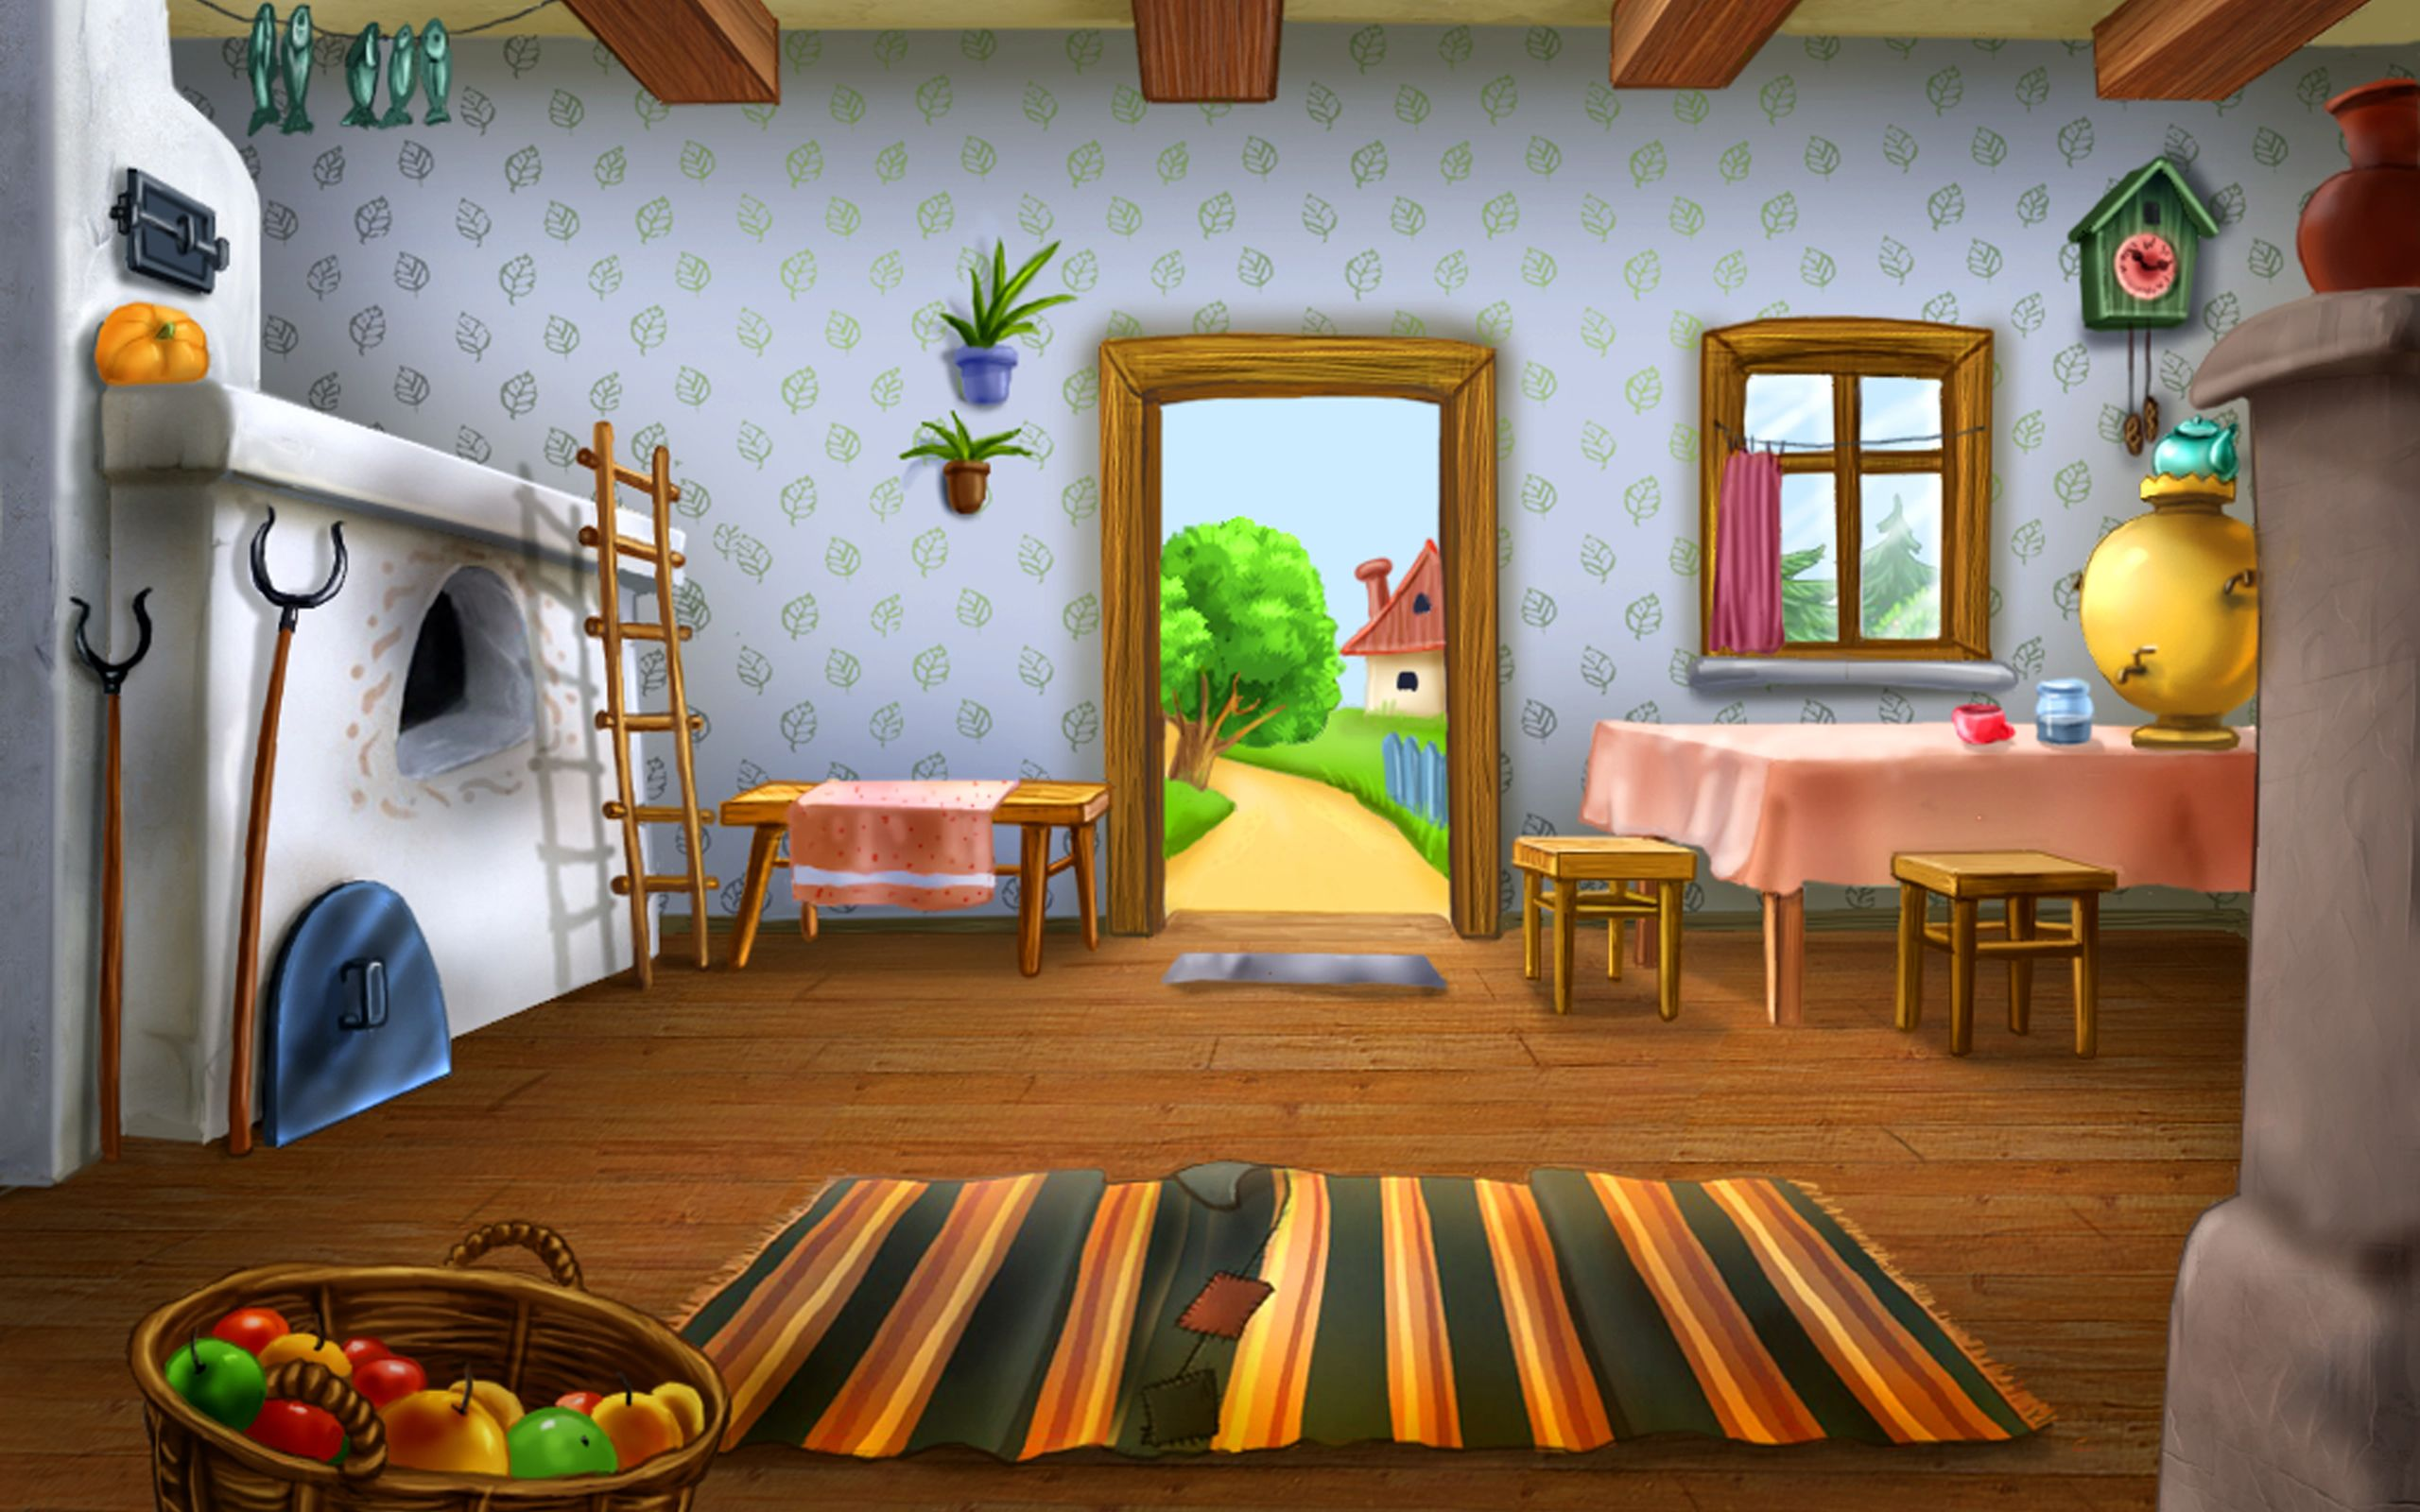 Room Cartoon Wallpaper Animated Free 3277829 Wallpaper